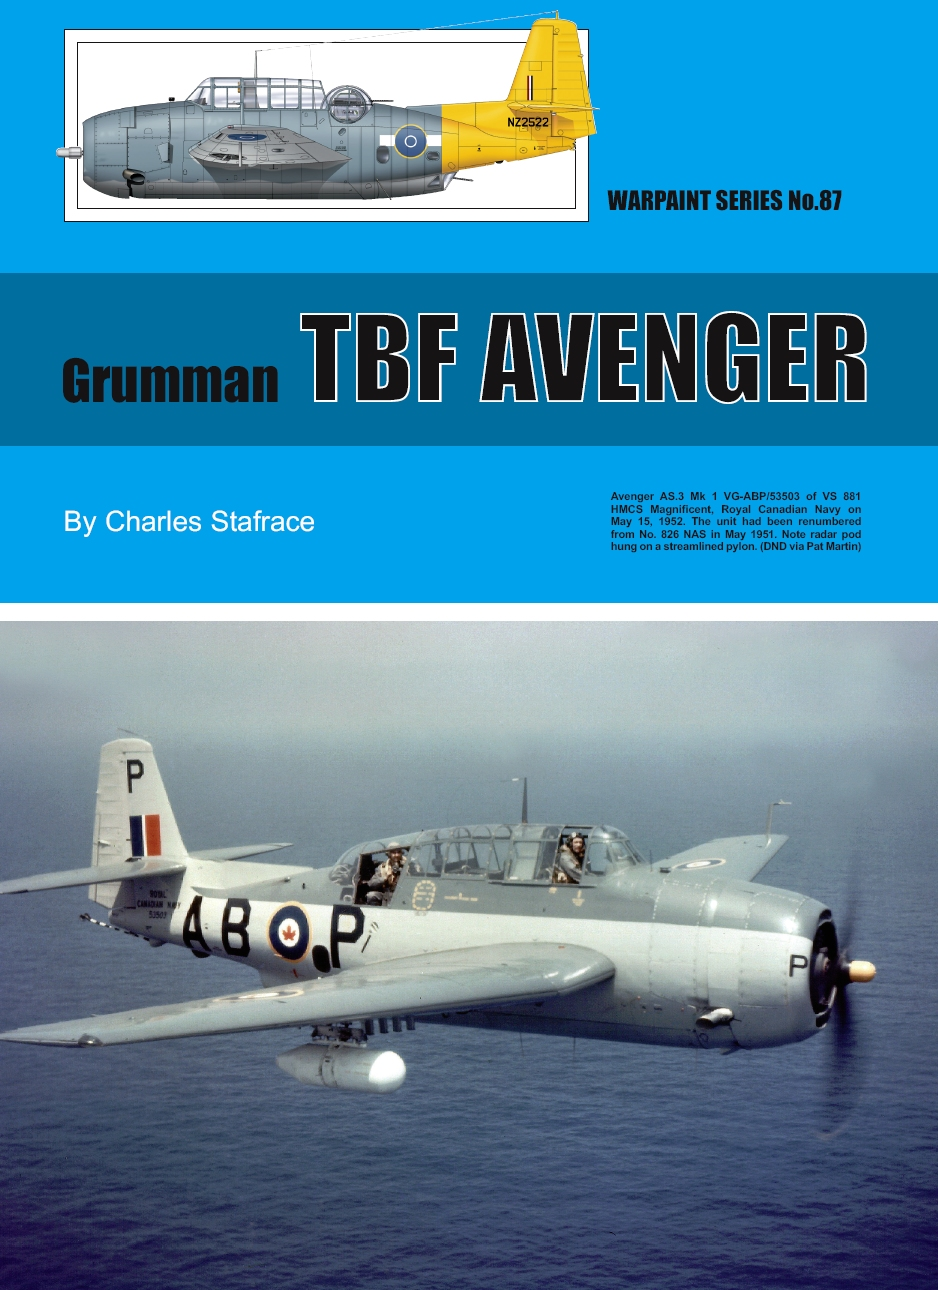 Guideline Publications No 87 Grumman TBF Avenger No. 87 in the Warpaint series